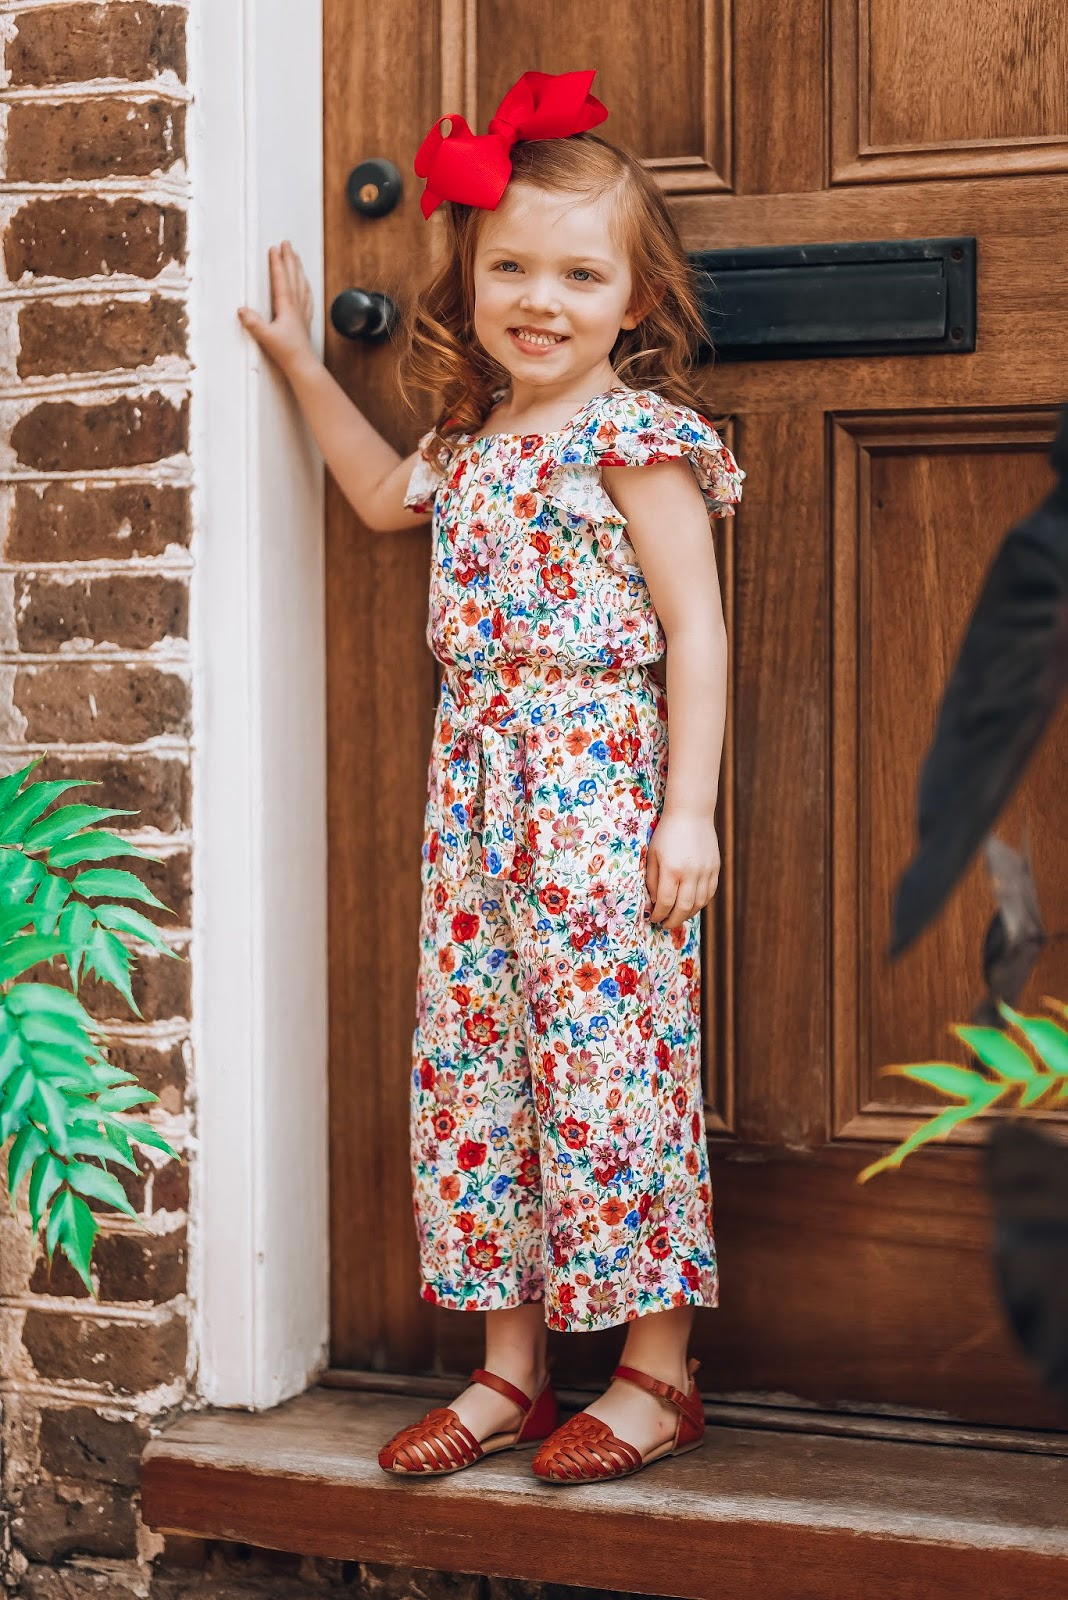 H&M Girls Floral Jumpsuit in Charleston - Something Delightful Blog #springstyle